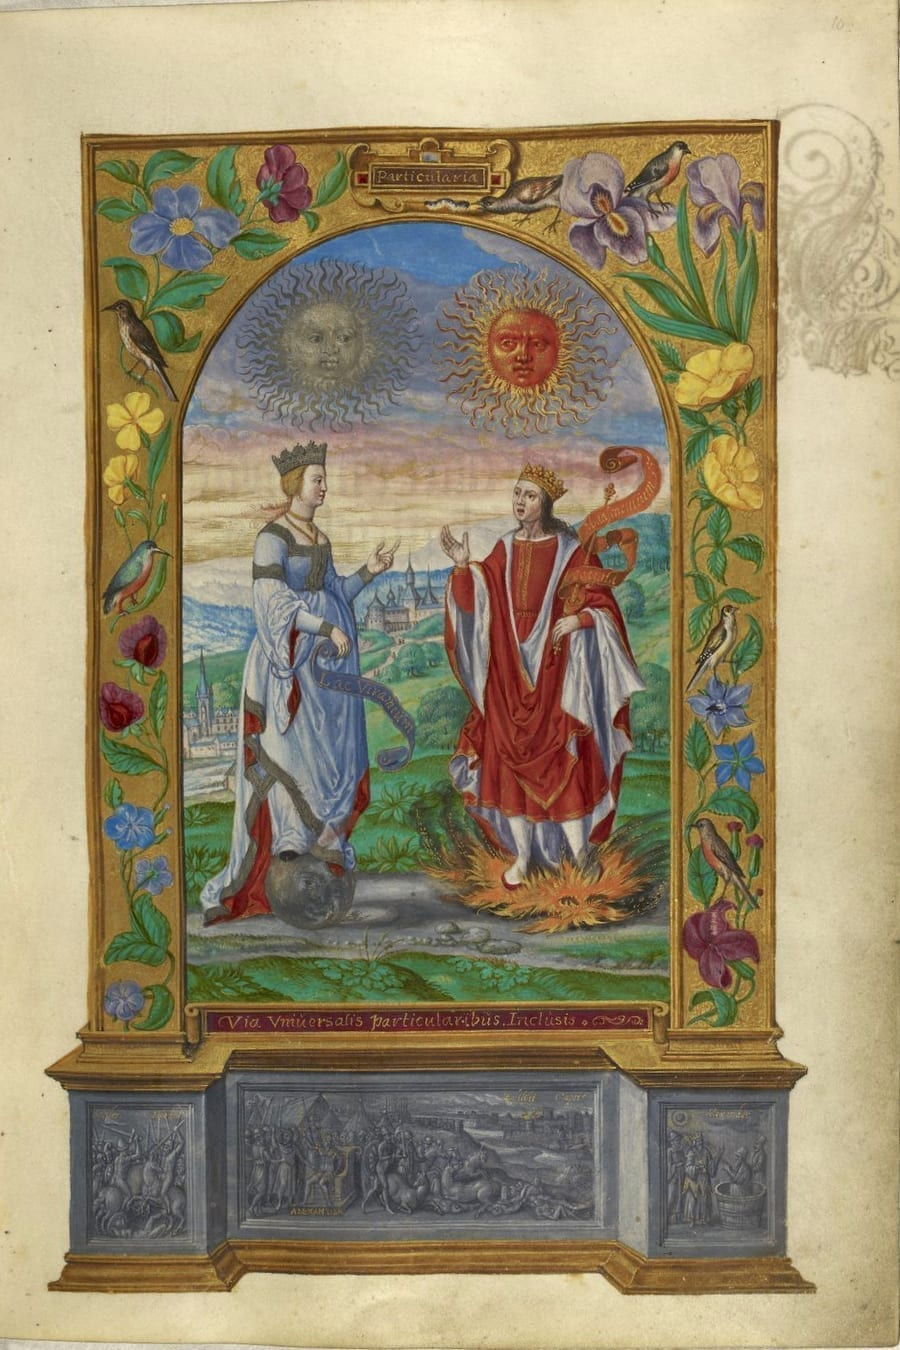 Illustration of king and queen from the Alchemical manuscript Splendor Solis